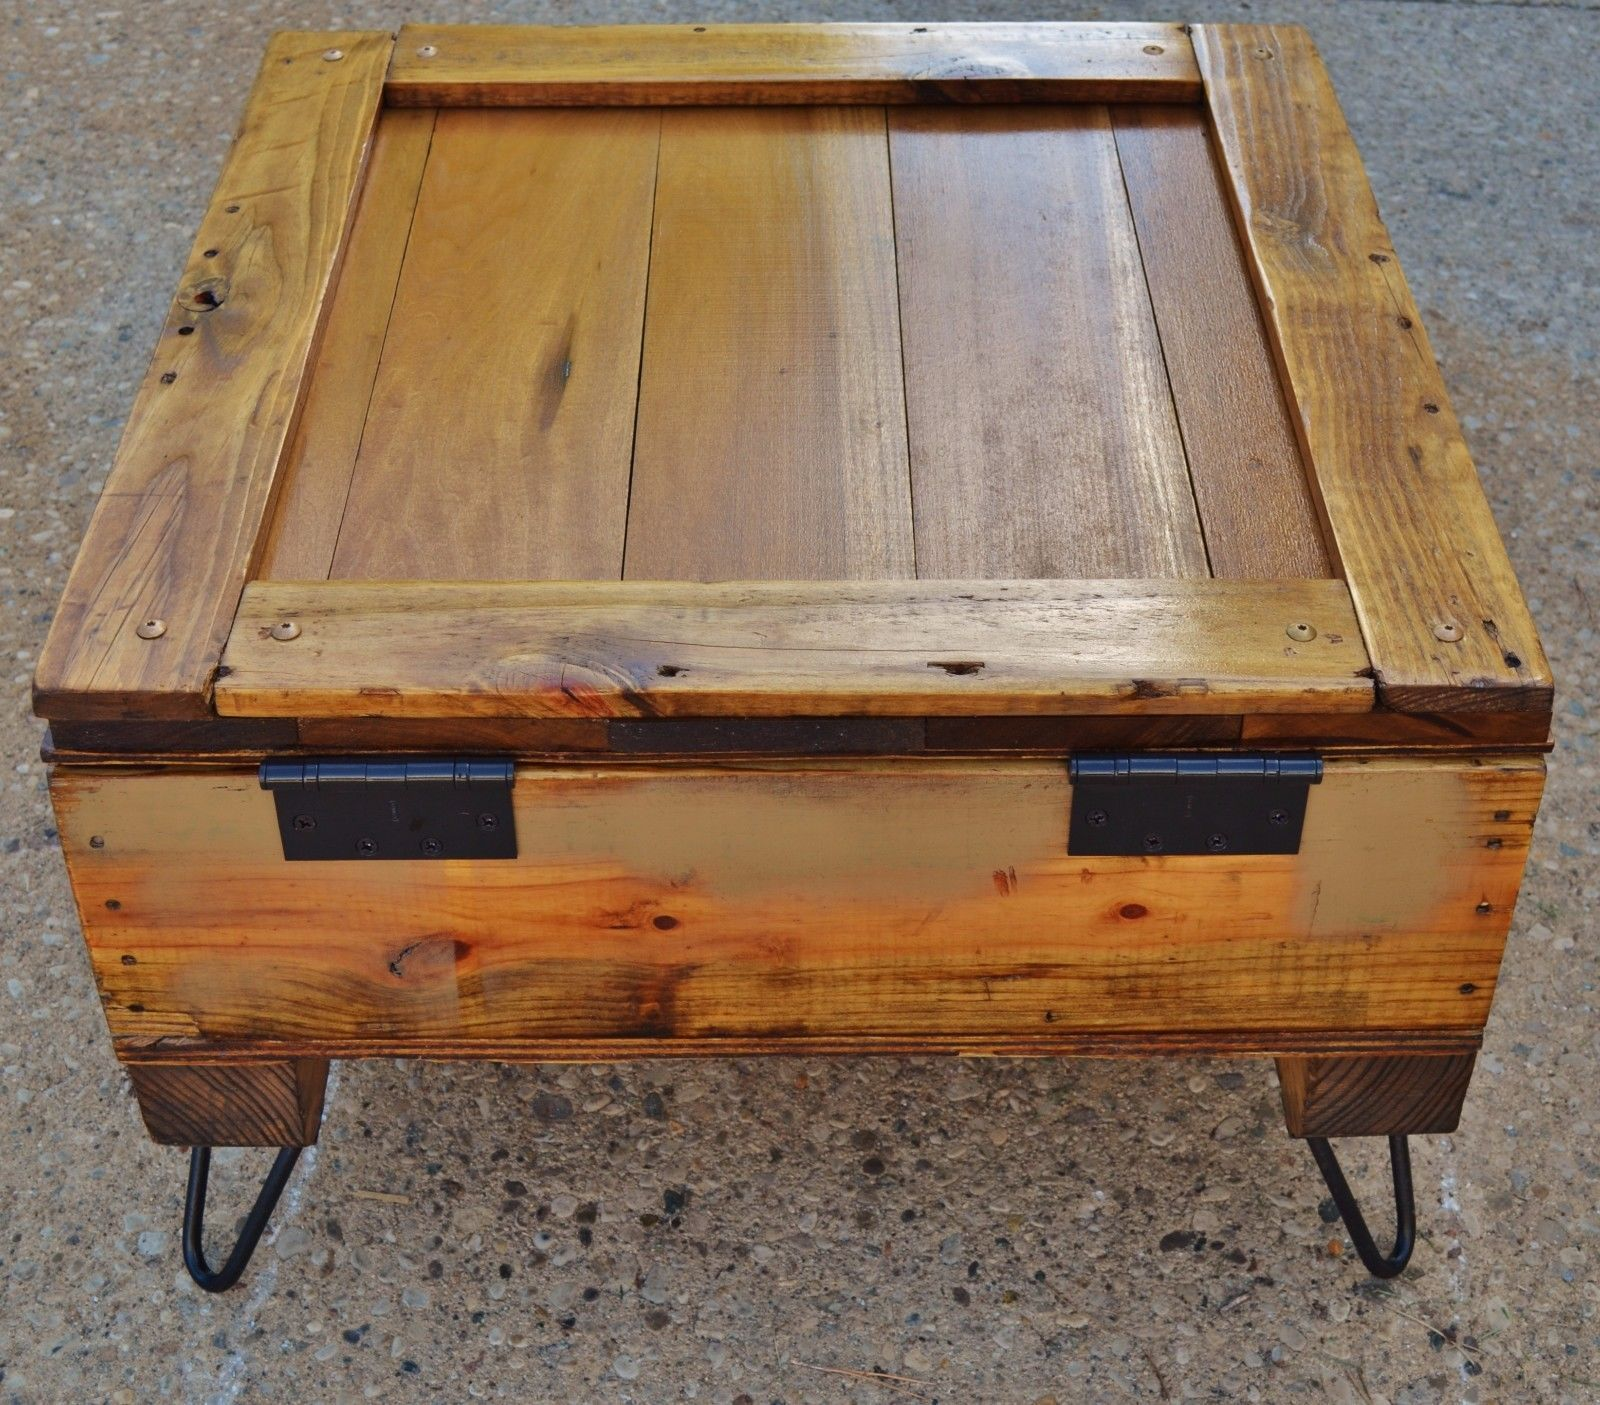 repurposed upcycled shipping crate rustic coffee table storage home garden furniture tables - Garden Furniture Crates